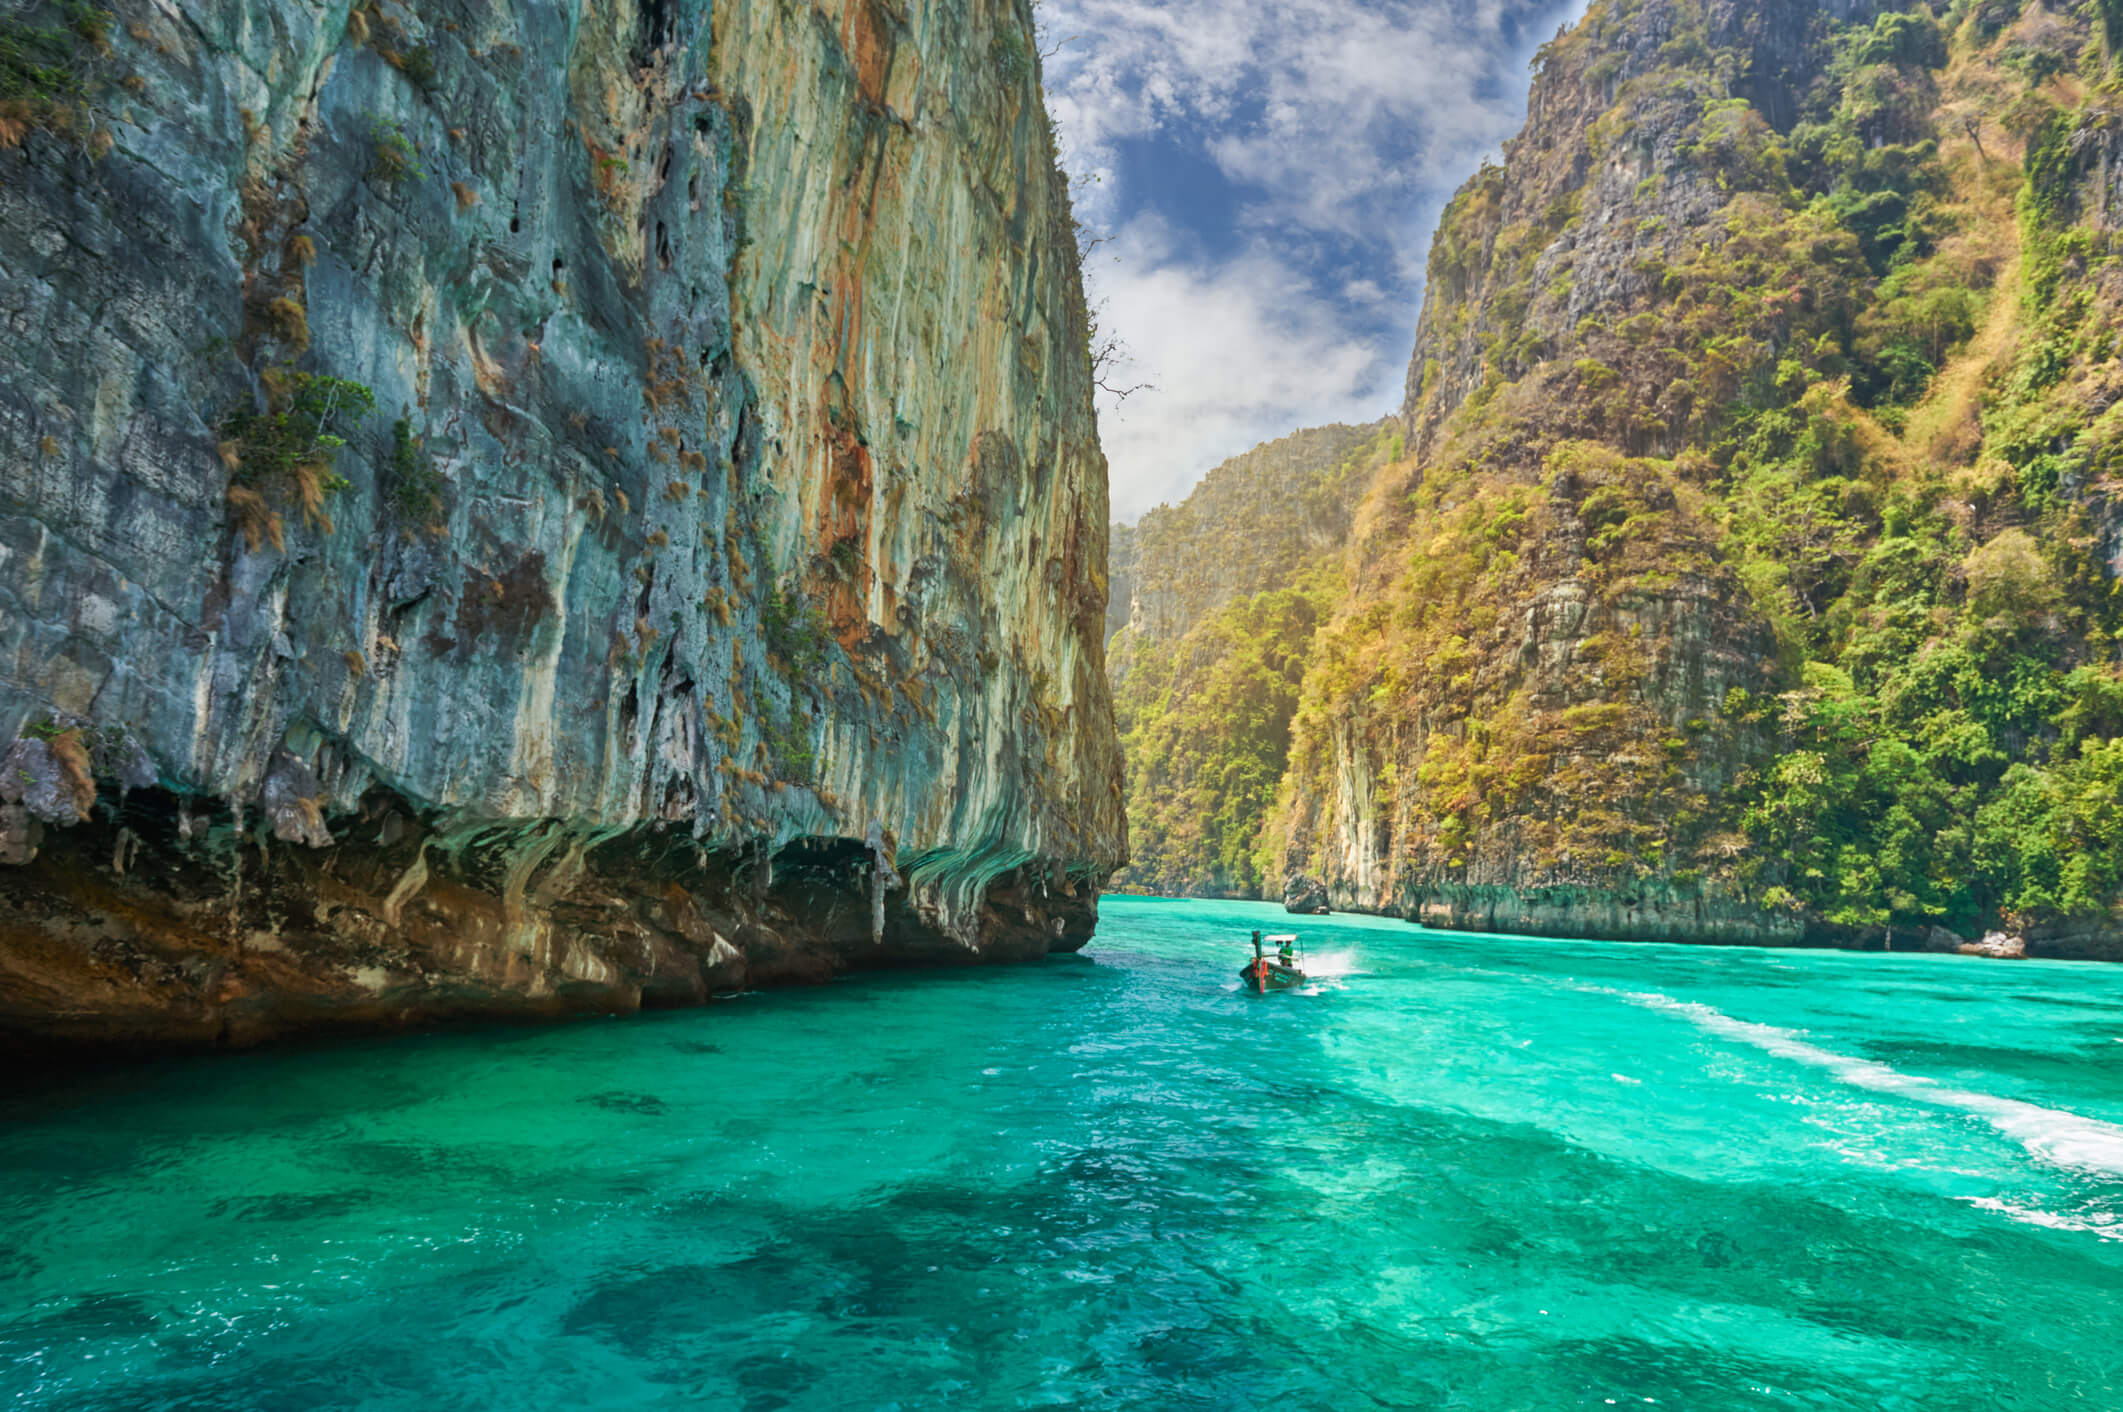 A boat cruising on the blue-green waters of phi phi island surrounded by gigantic limestone rocks - places to see in Krabi